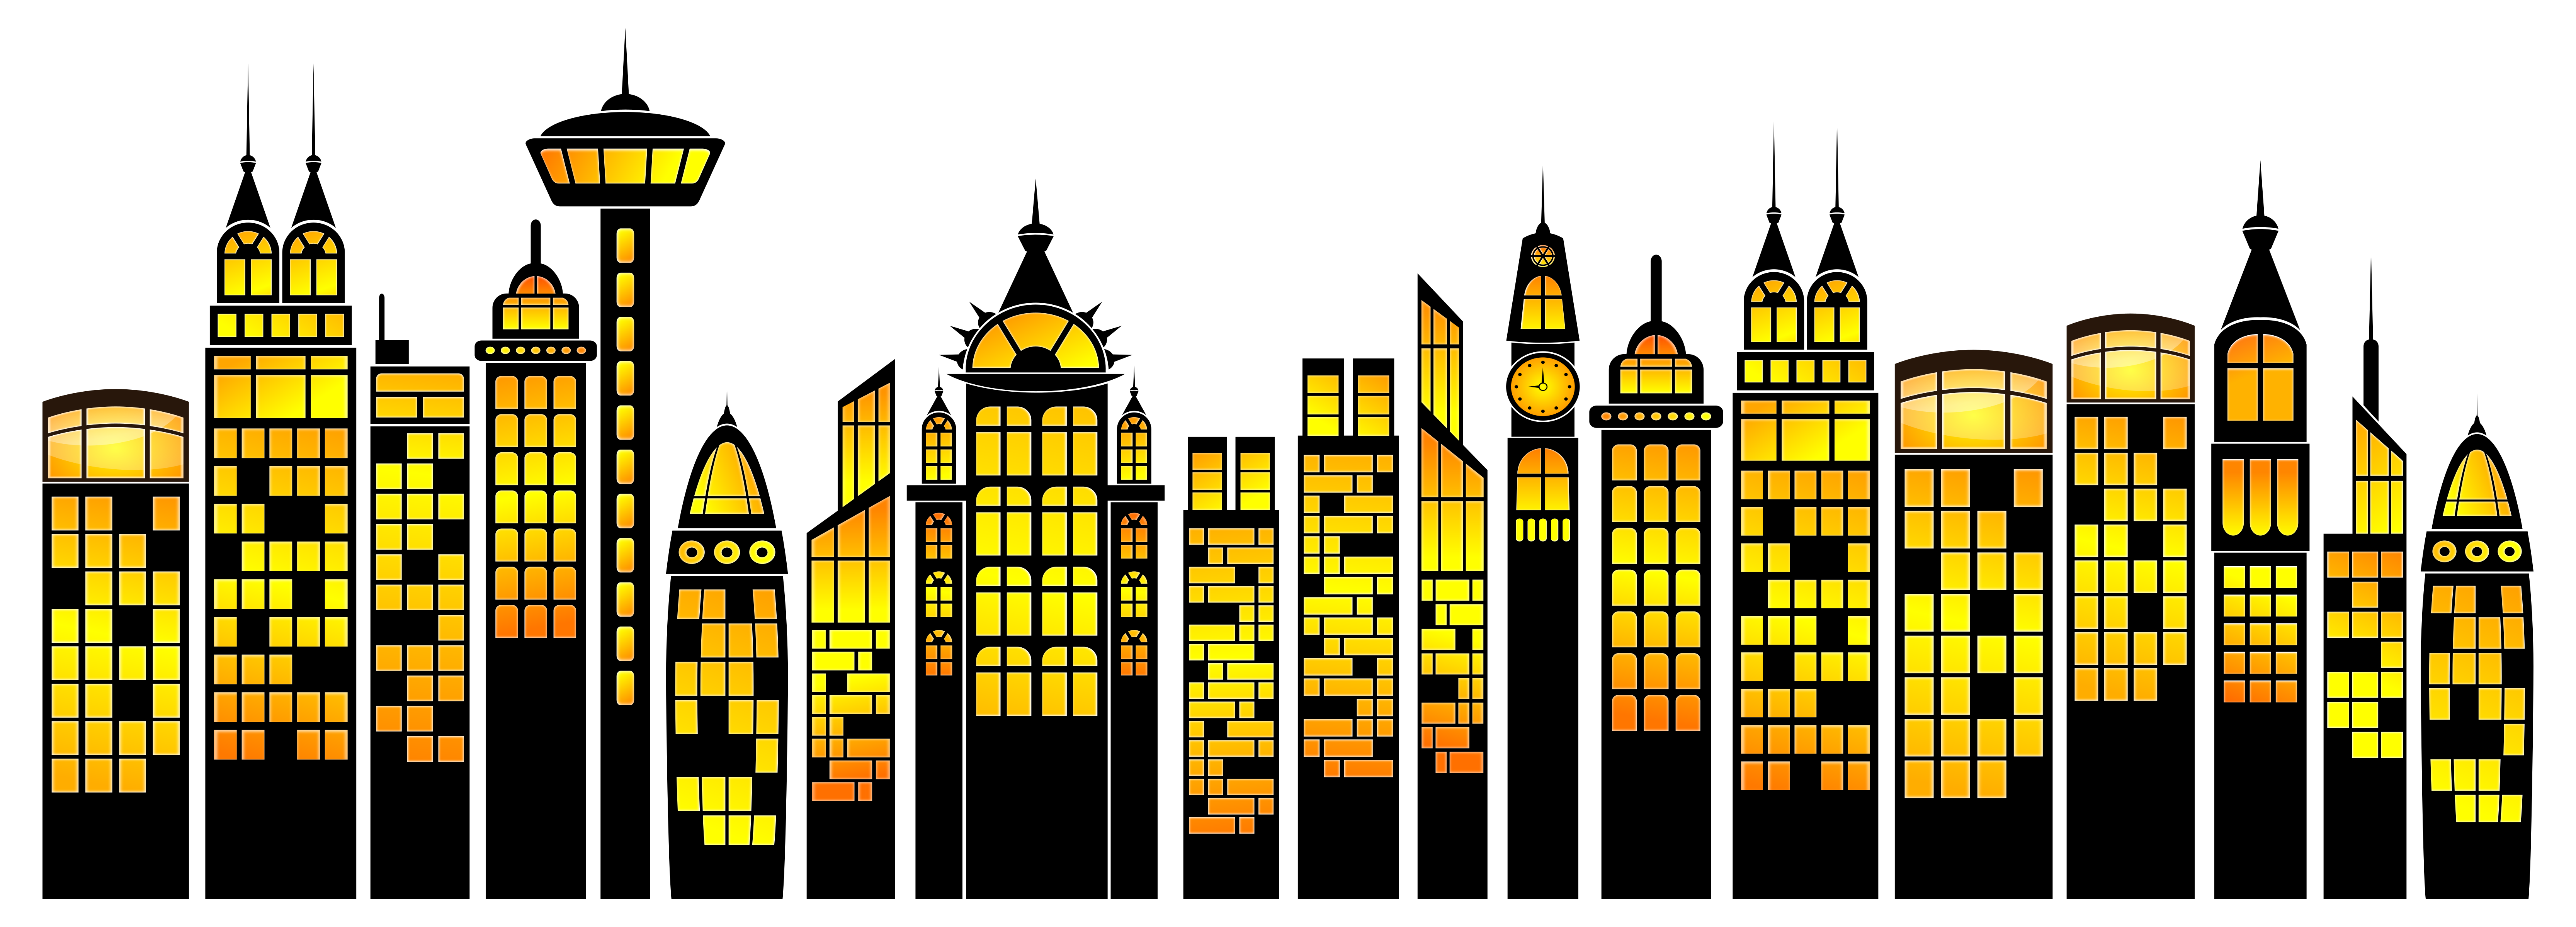 Comic book buildings clipart clip art library download Simple Buildings by Viscious-Speed | cc0 | Pinterest clip art library download